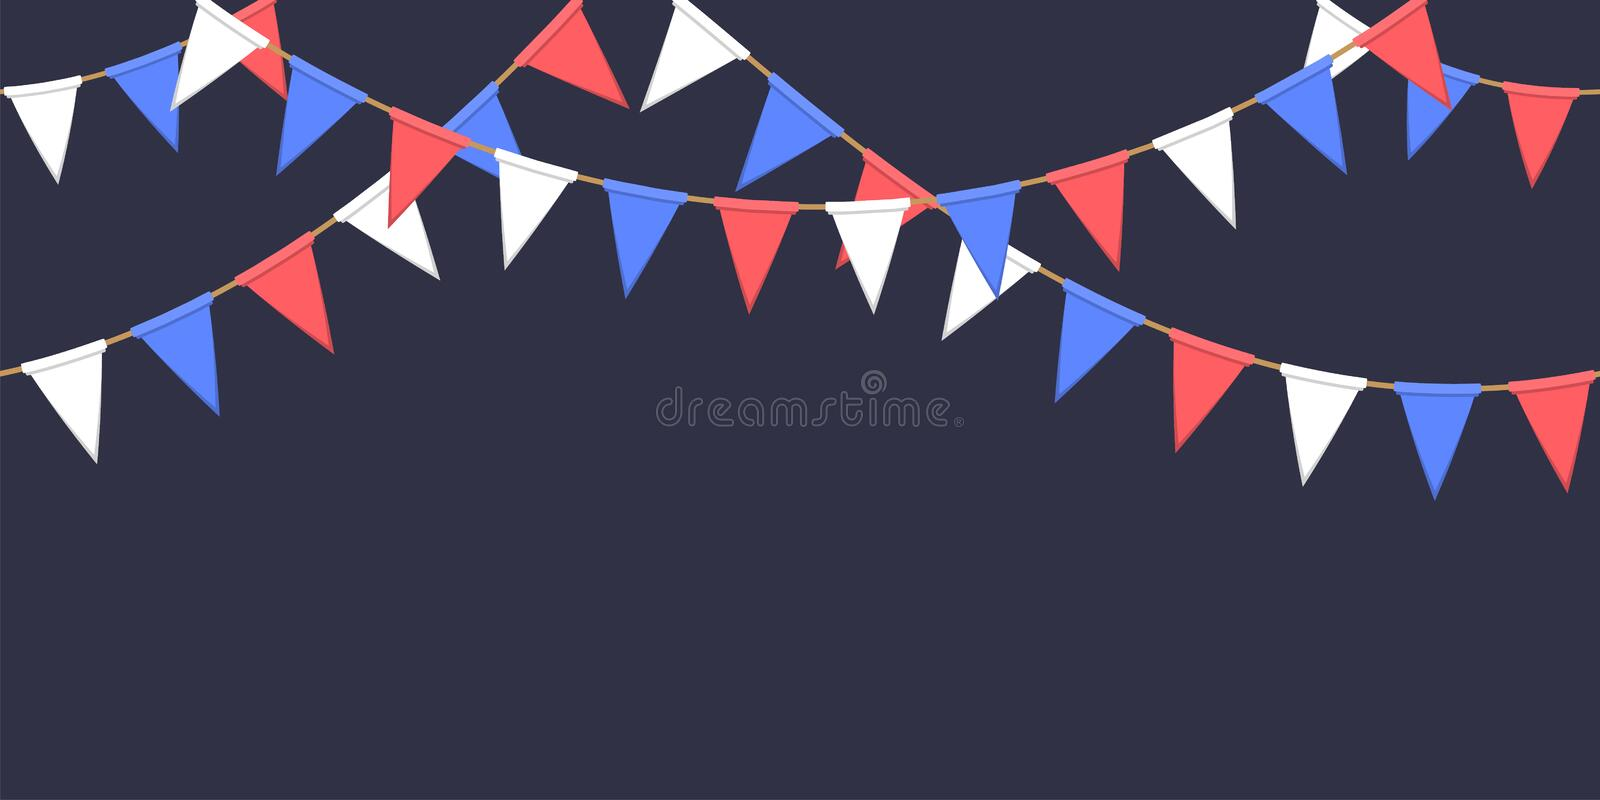 Seamless garland with triangle celebration flags chain, white, blue, red pennons on dark background, footer and banner fireworks. Eps 10 royalty free illustration